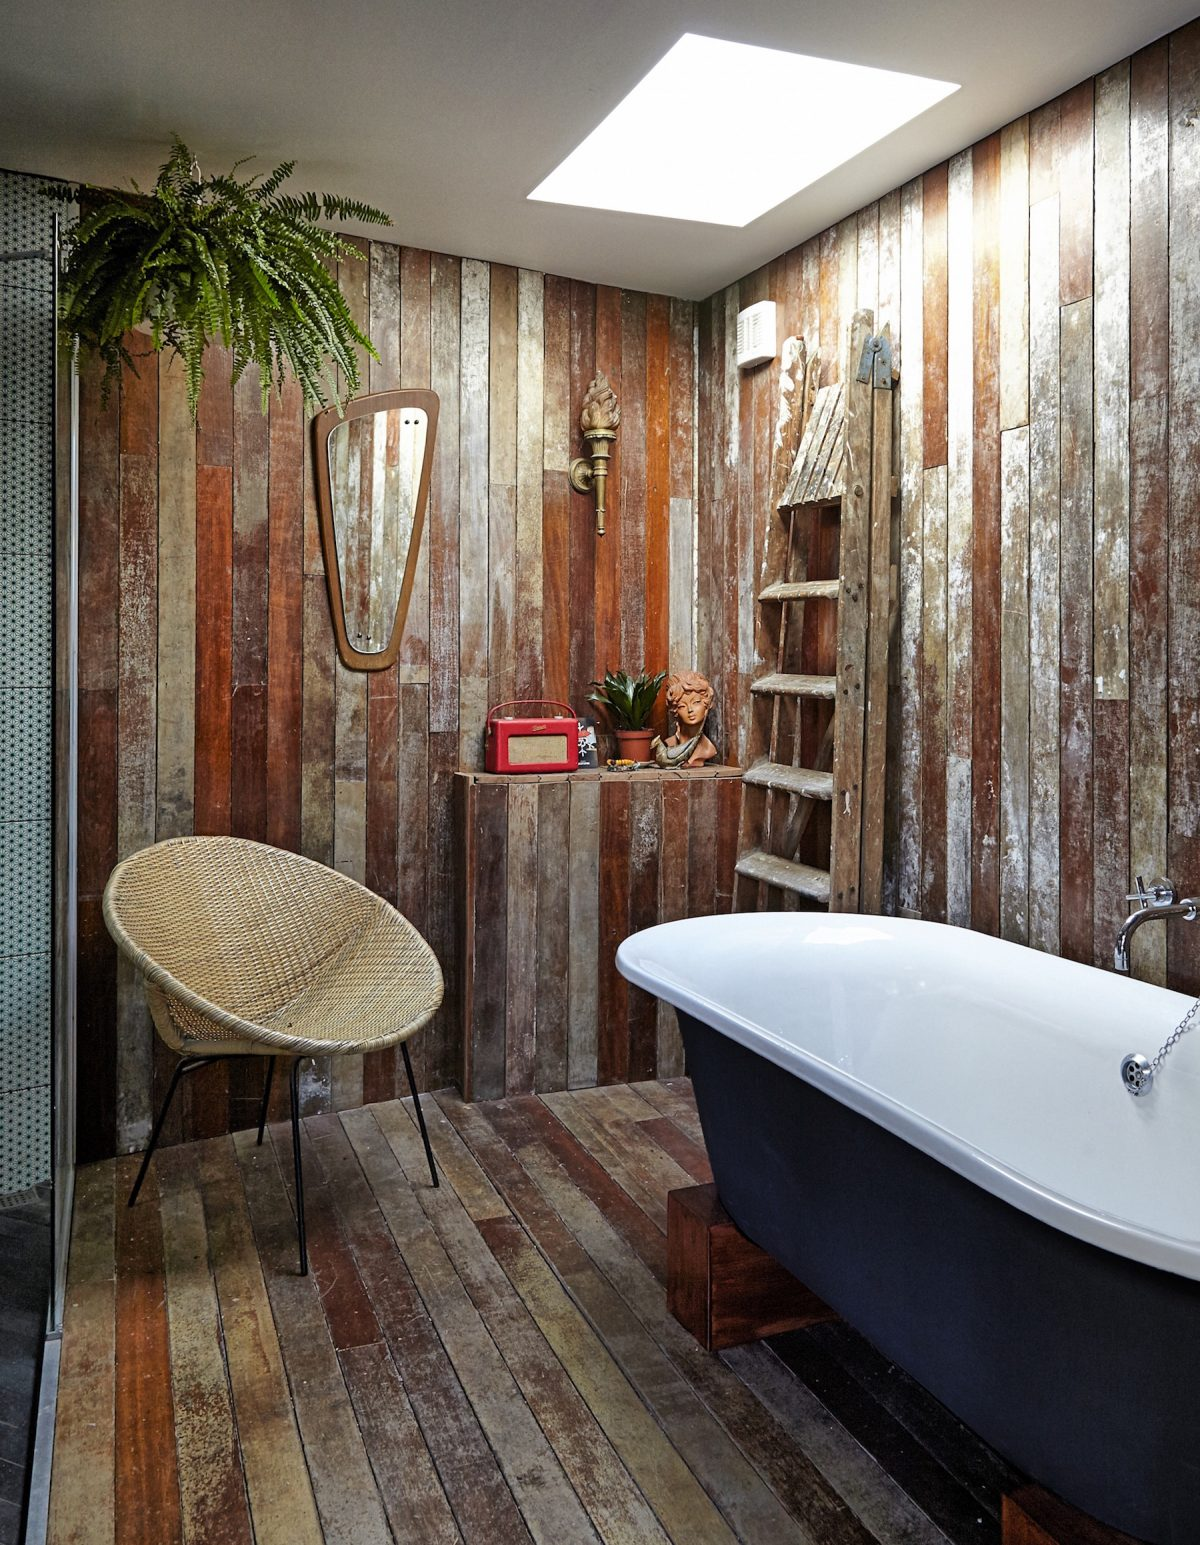 Hottest Interior Design Trends: 8 Of The Hottest Interior Design Trends To Watch Out For